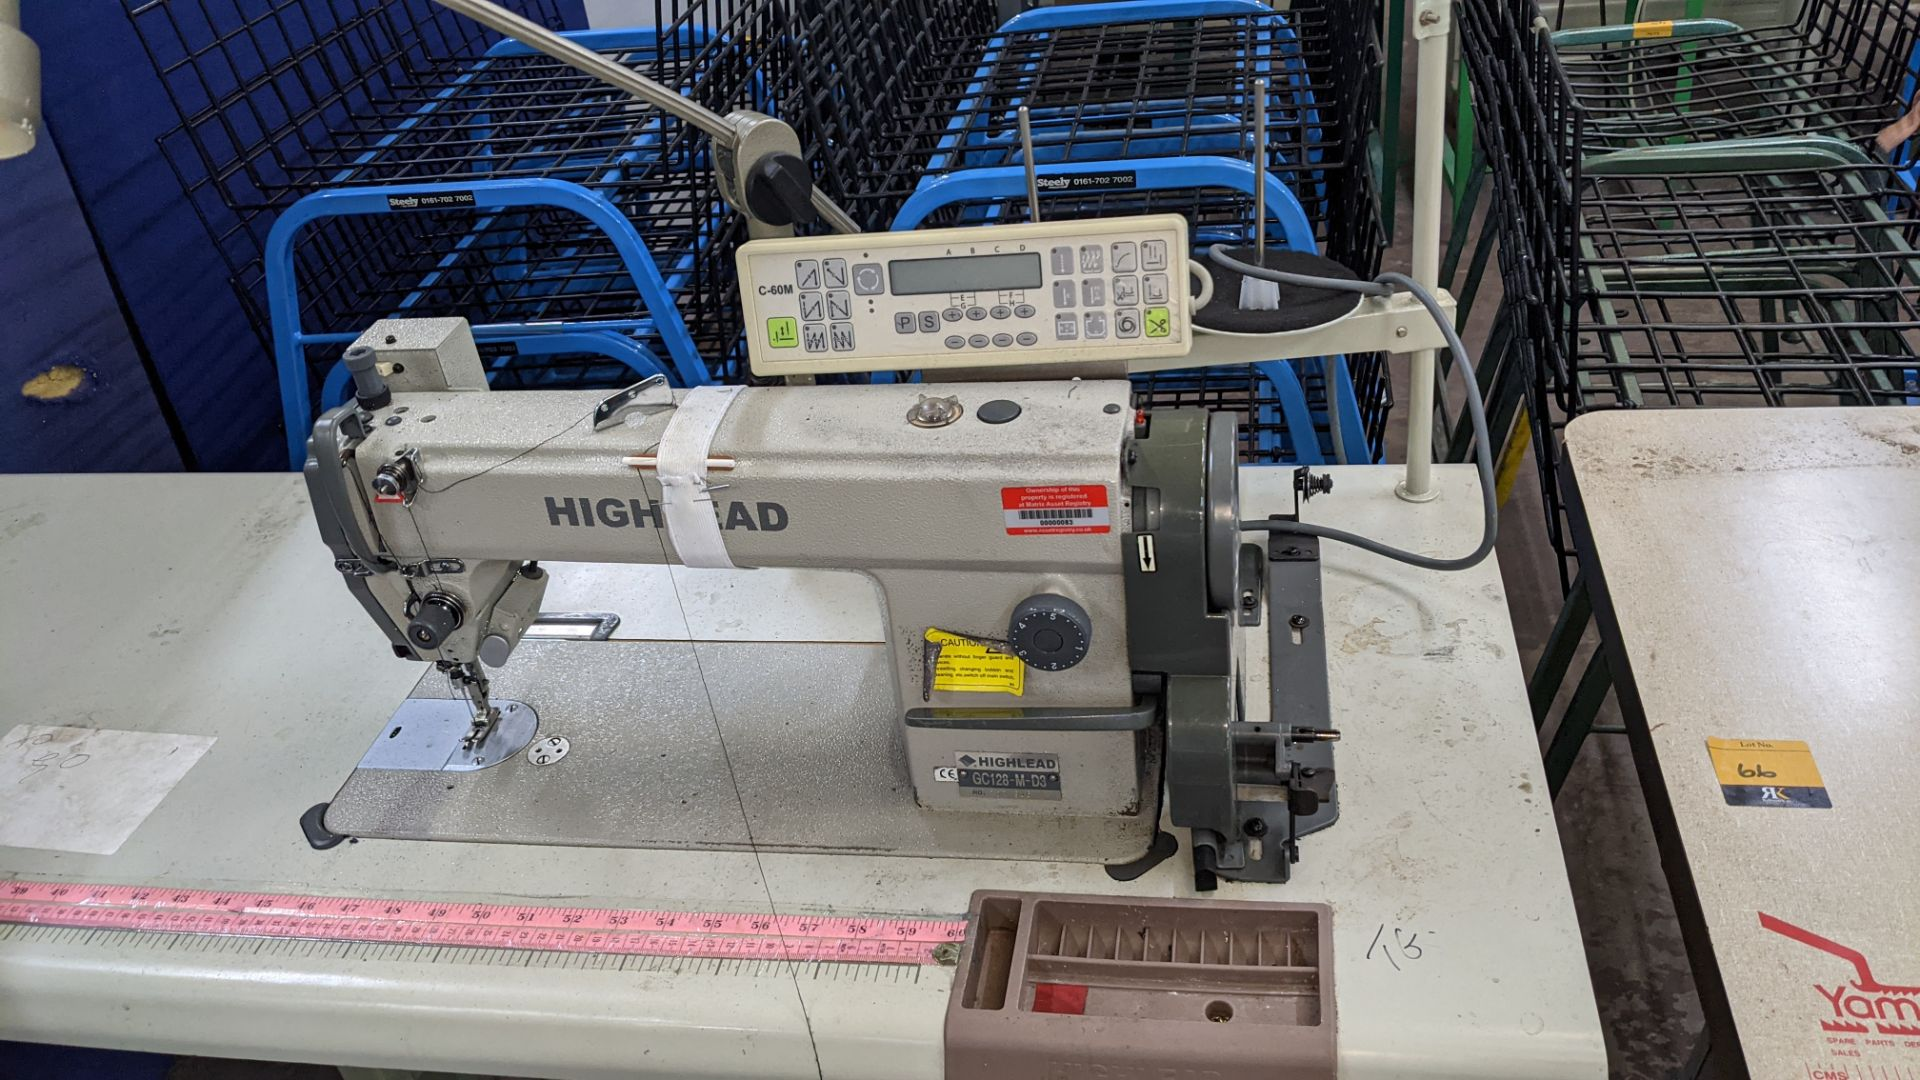 Highlead model GC128-M-D3 sewing machine with model C-60M digital controller - Image 5 of 18